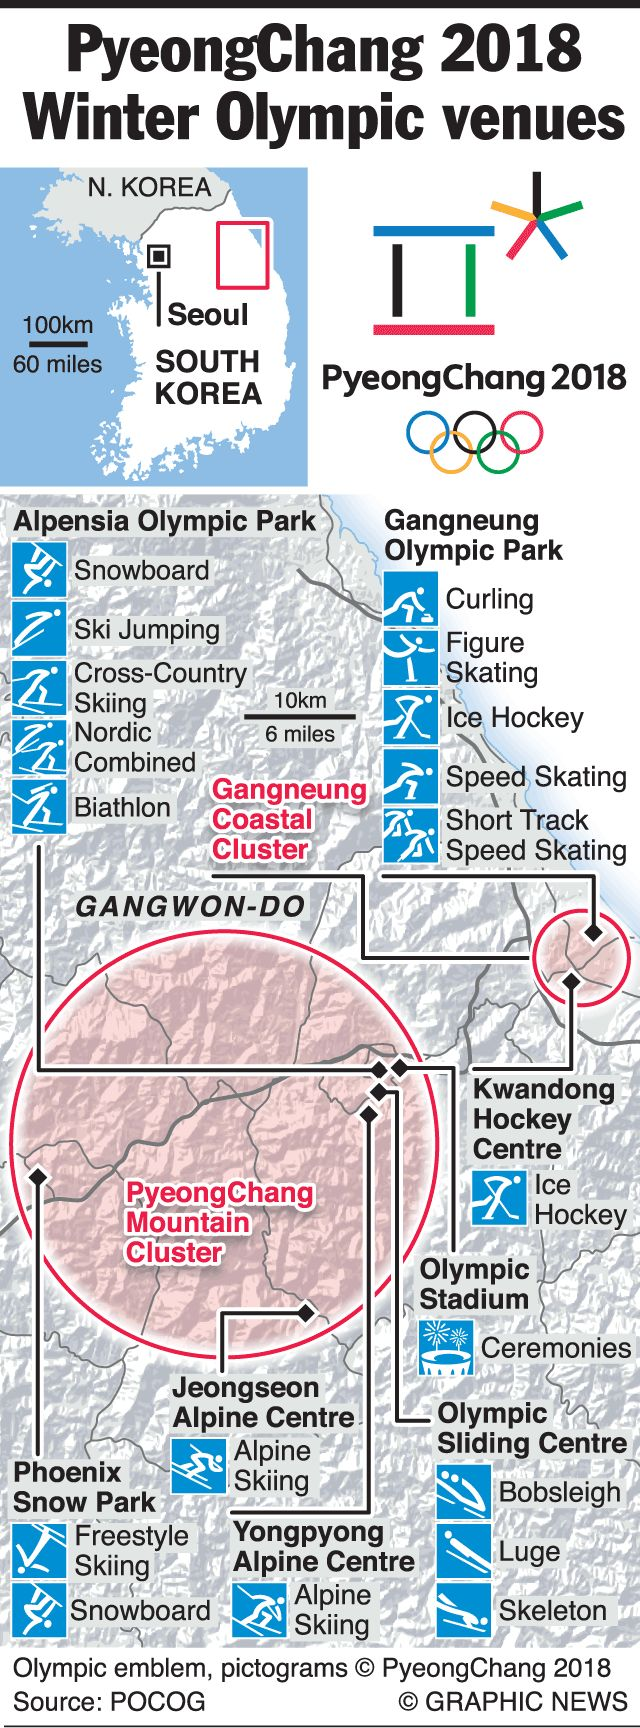 February 9-25, 2018 -- South Korea is hosting the 2018 Winter Olympic Games with 13 competition venues. There are two main venues, the mountain resort of Alpensia for Nordic and alpine skiing and the other outdoor sports, and the coast city of Gangneung for the indoor sports such as figure skating, hockey and curling.